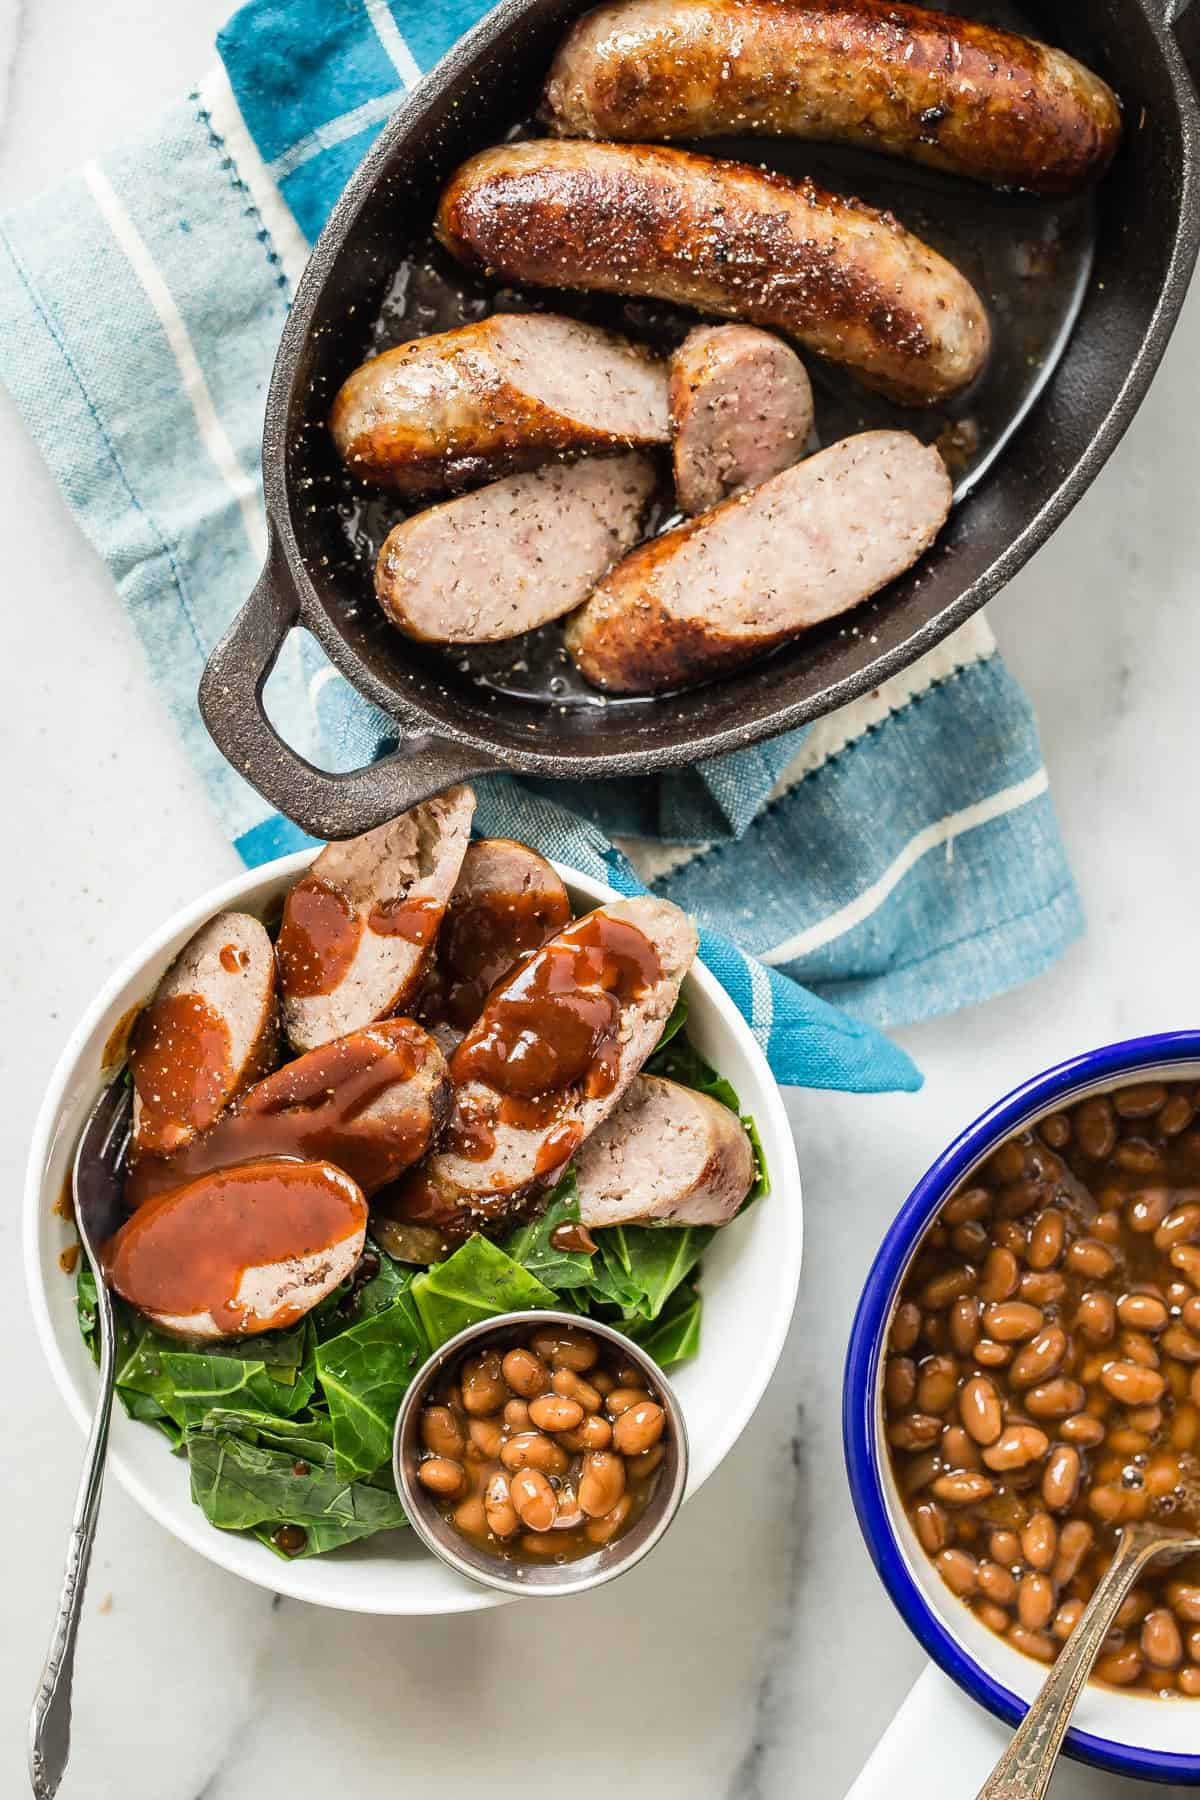 Bratwurst sausages with southern style collard greens, baked beans and a smoky barbecue sauce on top. This is the perfect way to enjoy some juicy brats and celebrate Bratsgiving!